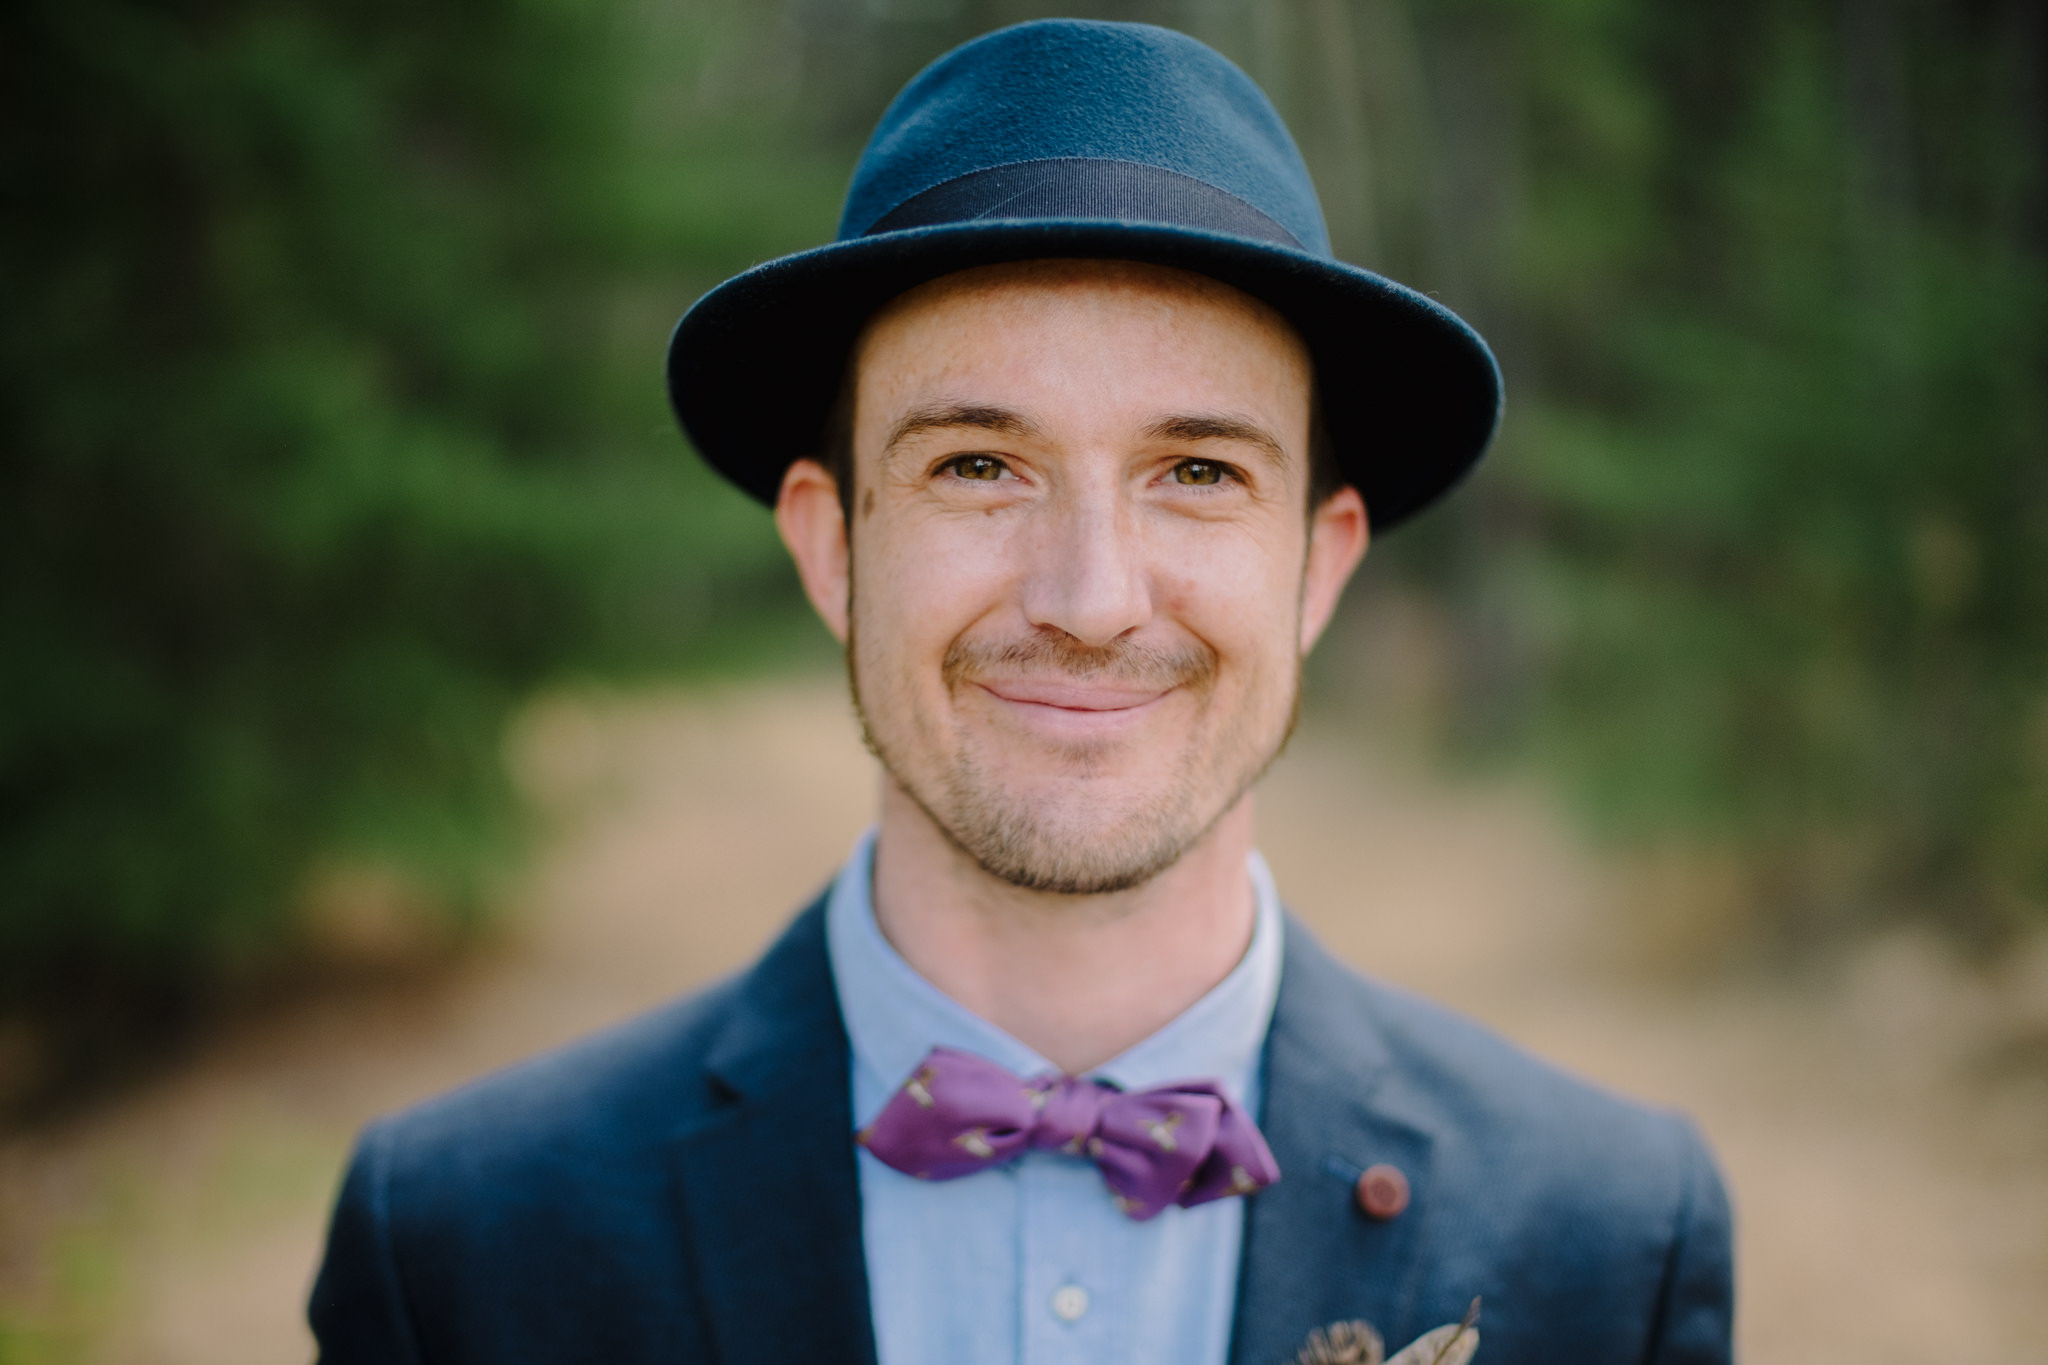 Groom wearing bow tie and hat